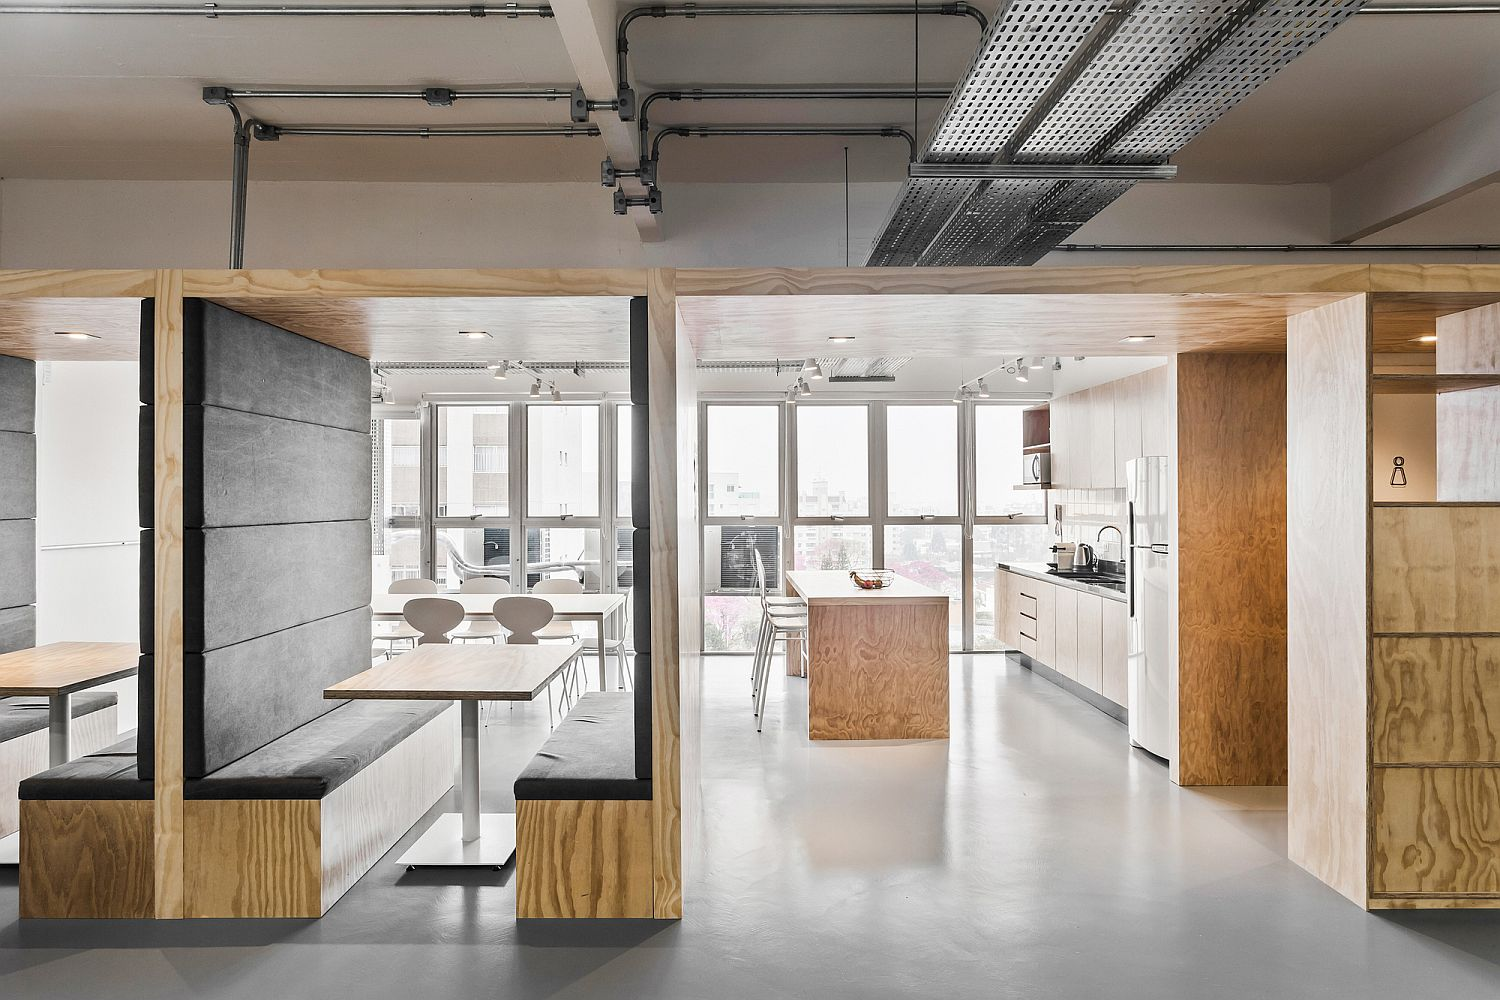 Exposed industrial elements are coupled with modernity inside this multi-level Brazilian office